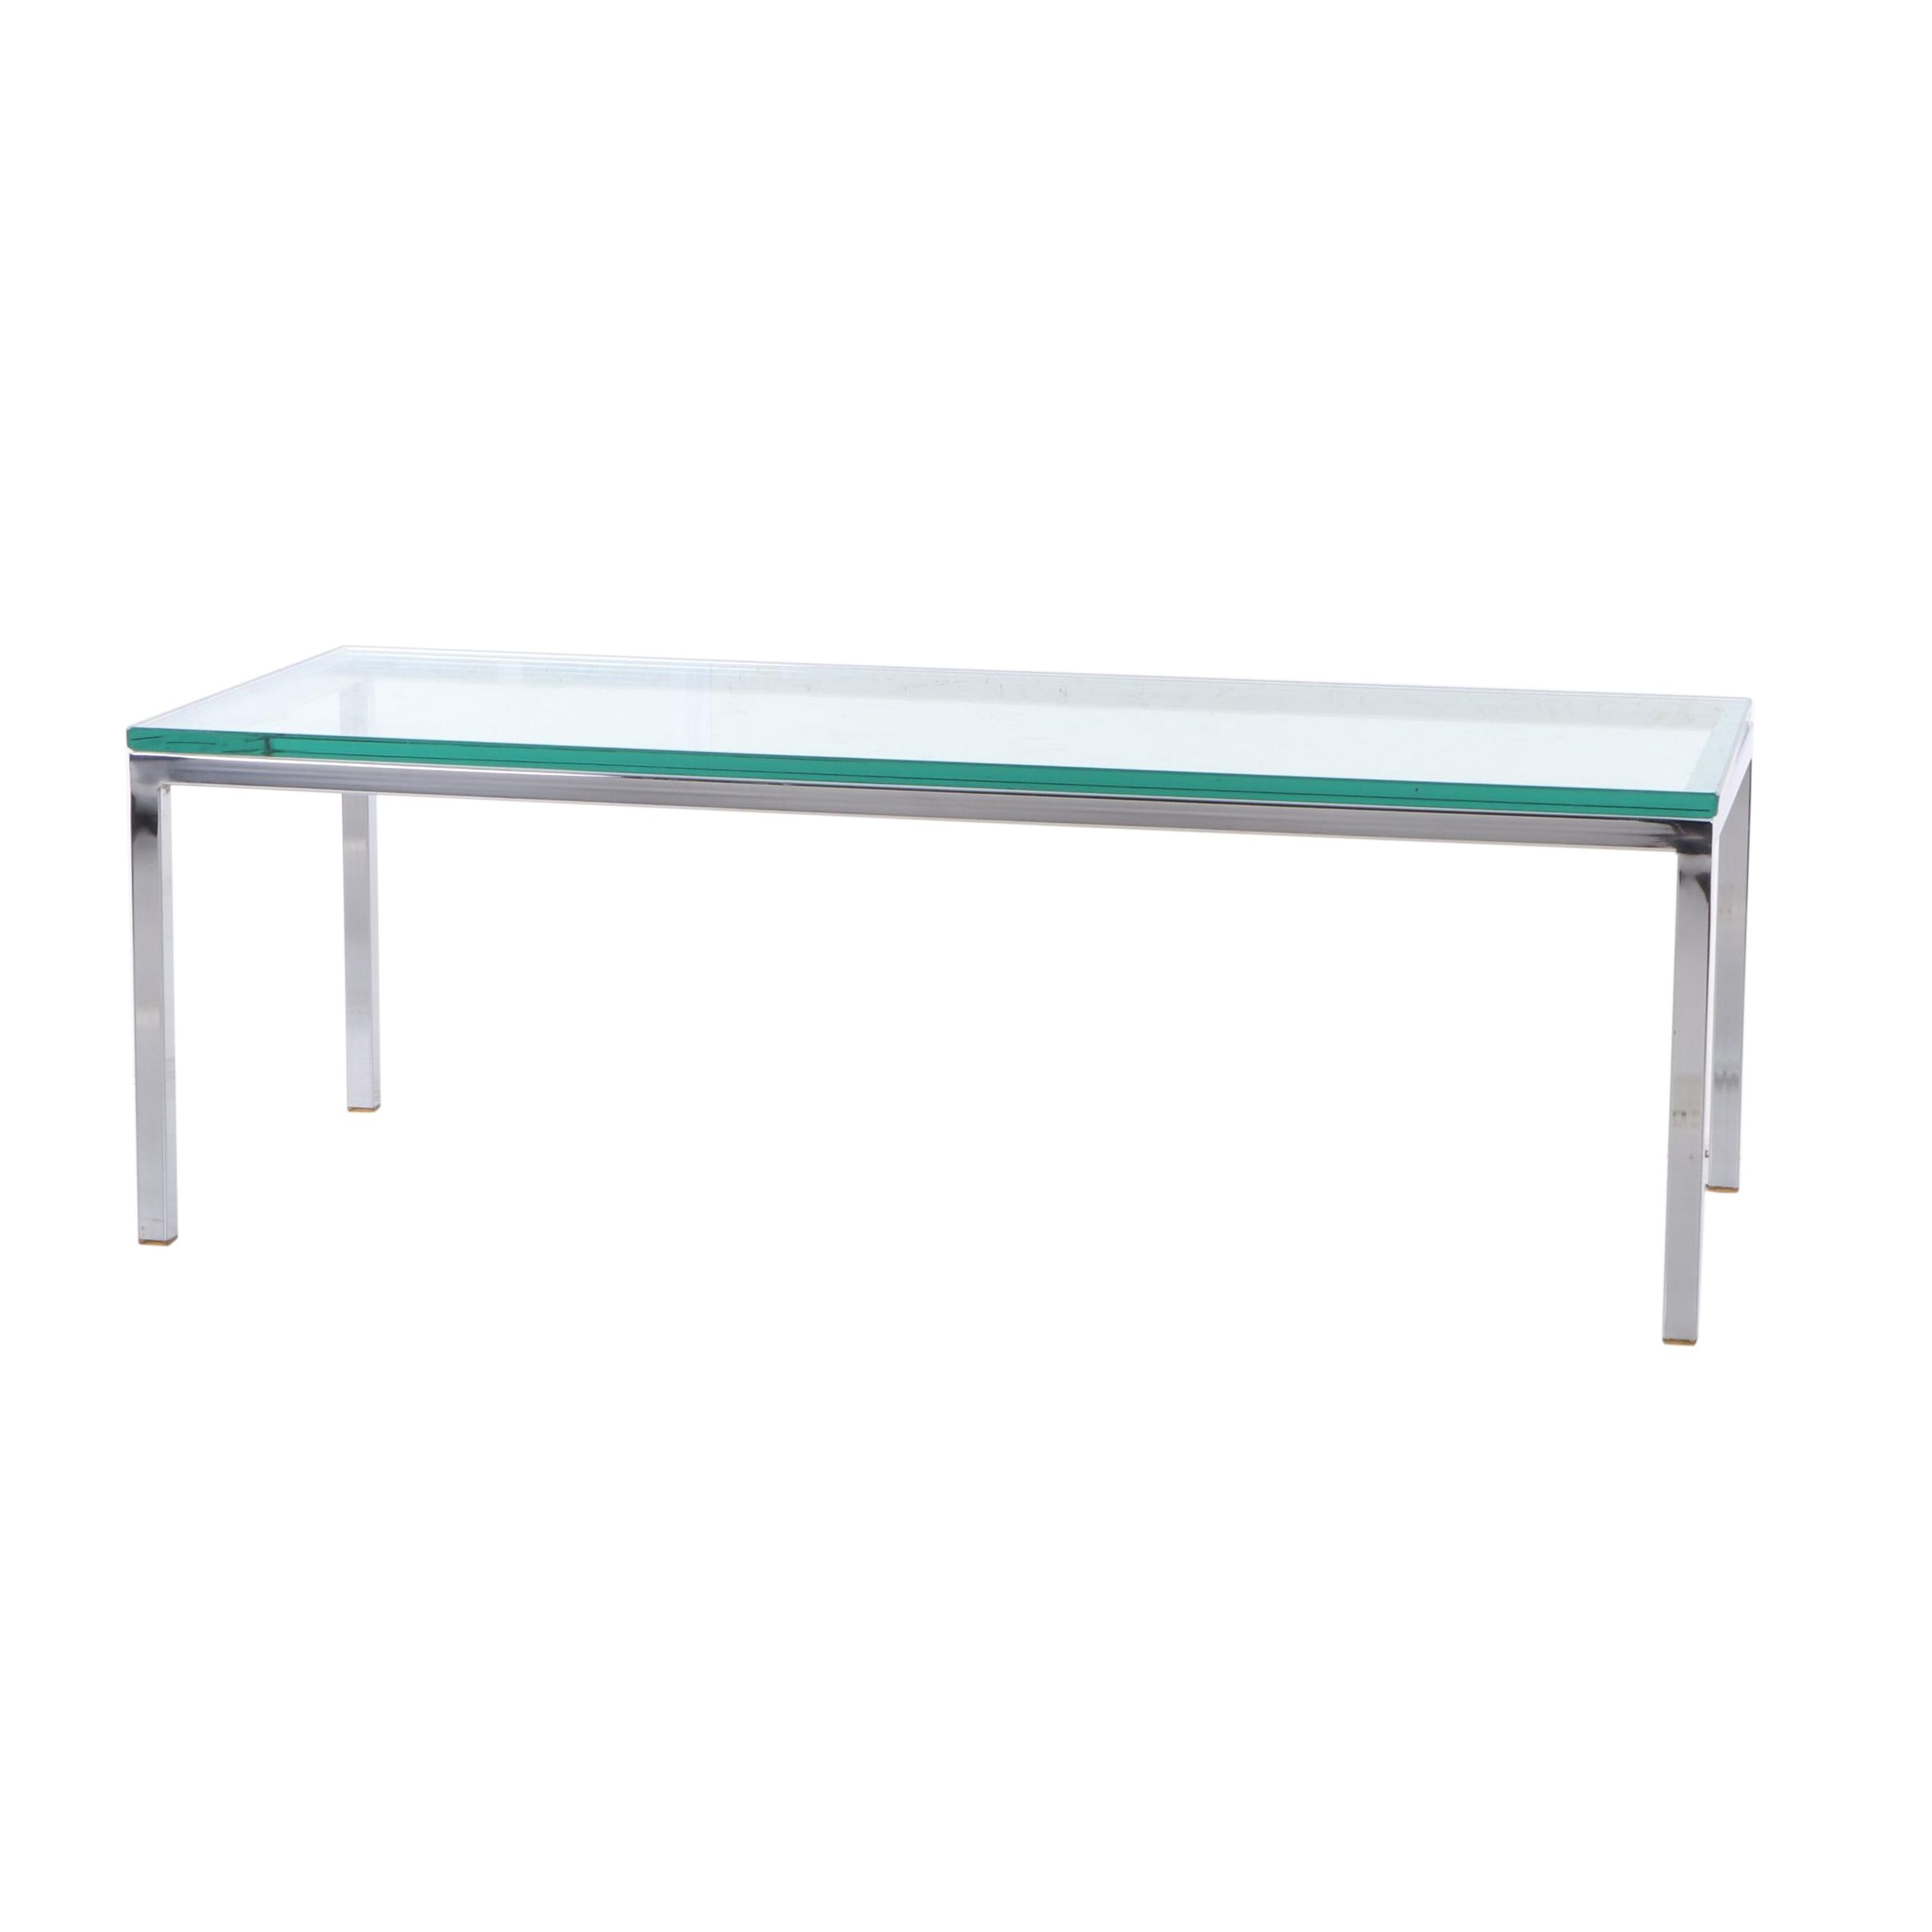 Modern Chrome and Glass Coffee Table, Late 20th Century